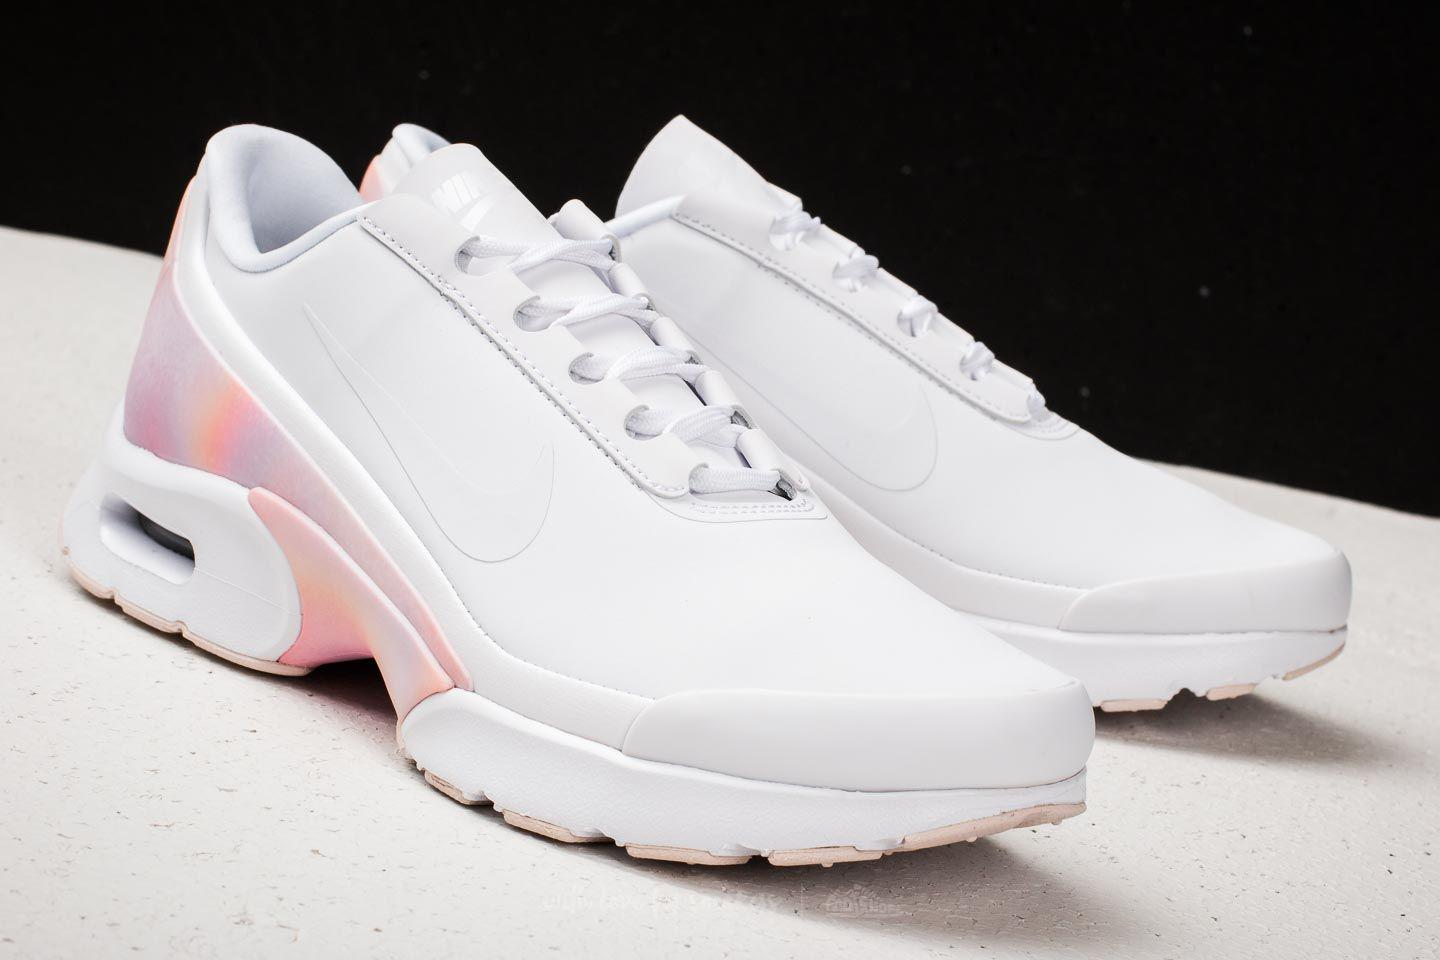 a7d0956771 Nike Air Max Jewell Premium W White/ White-barely Rose in White - Lyst